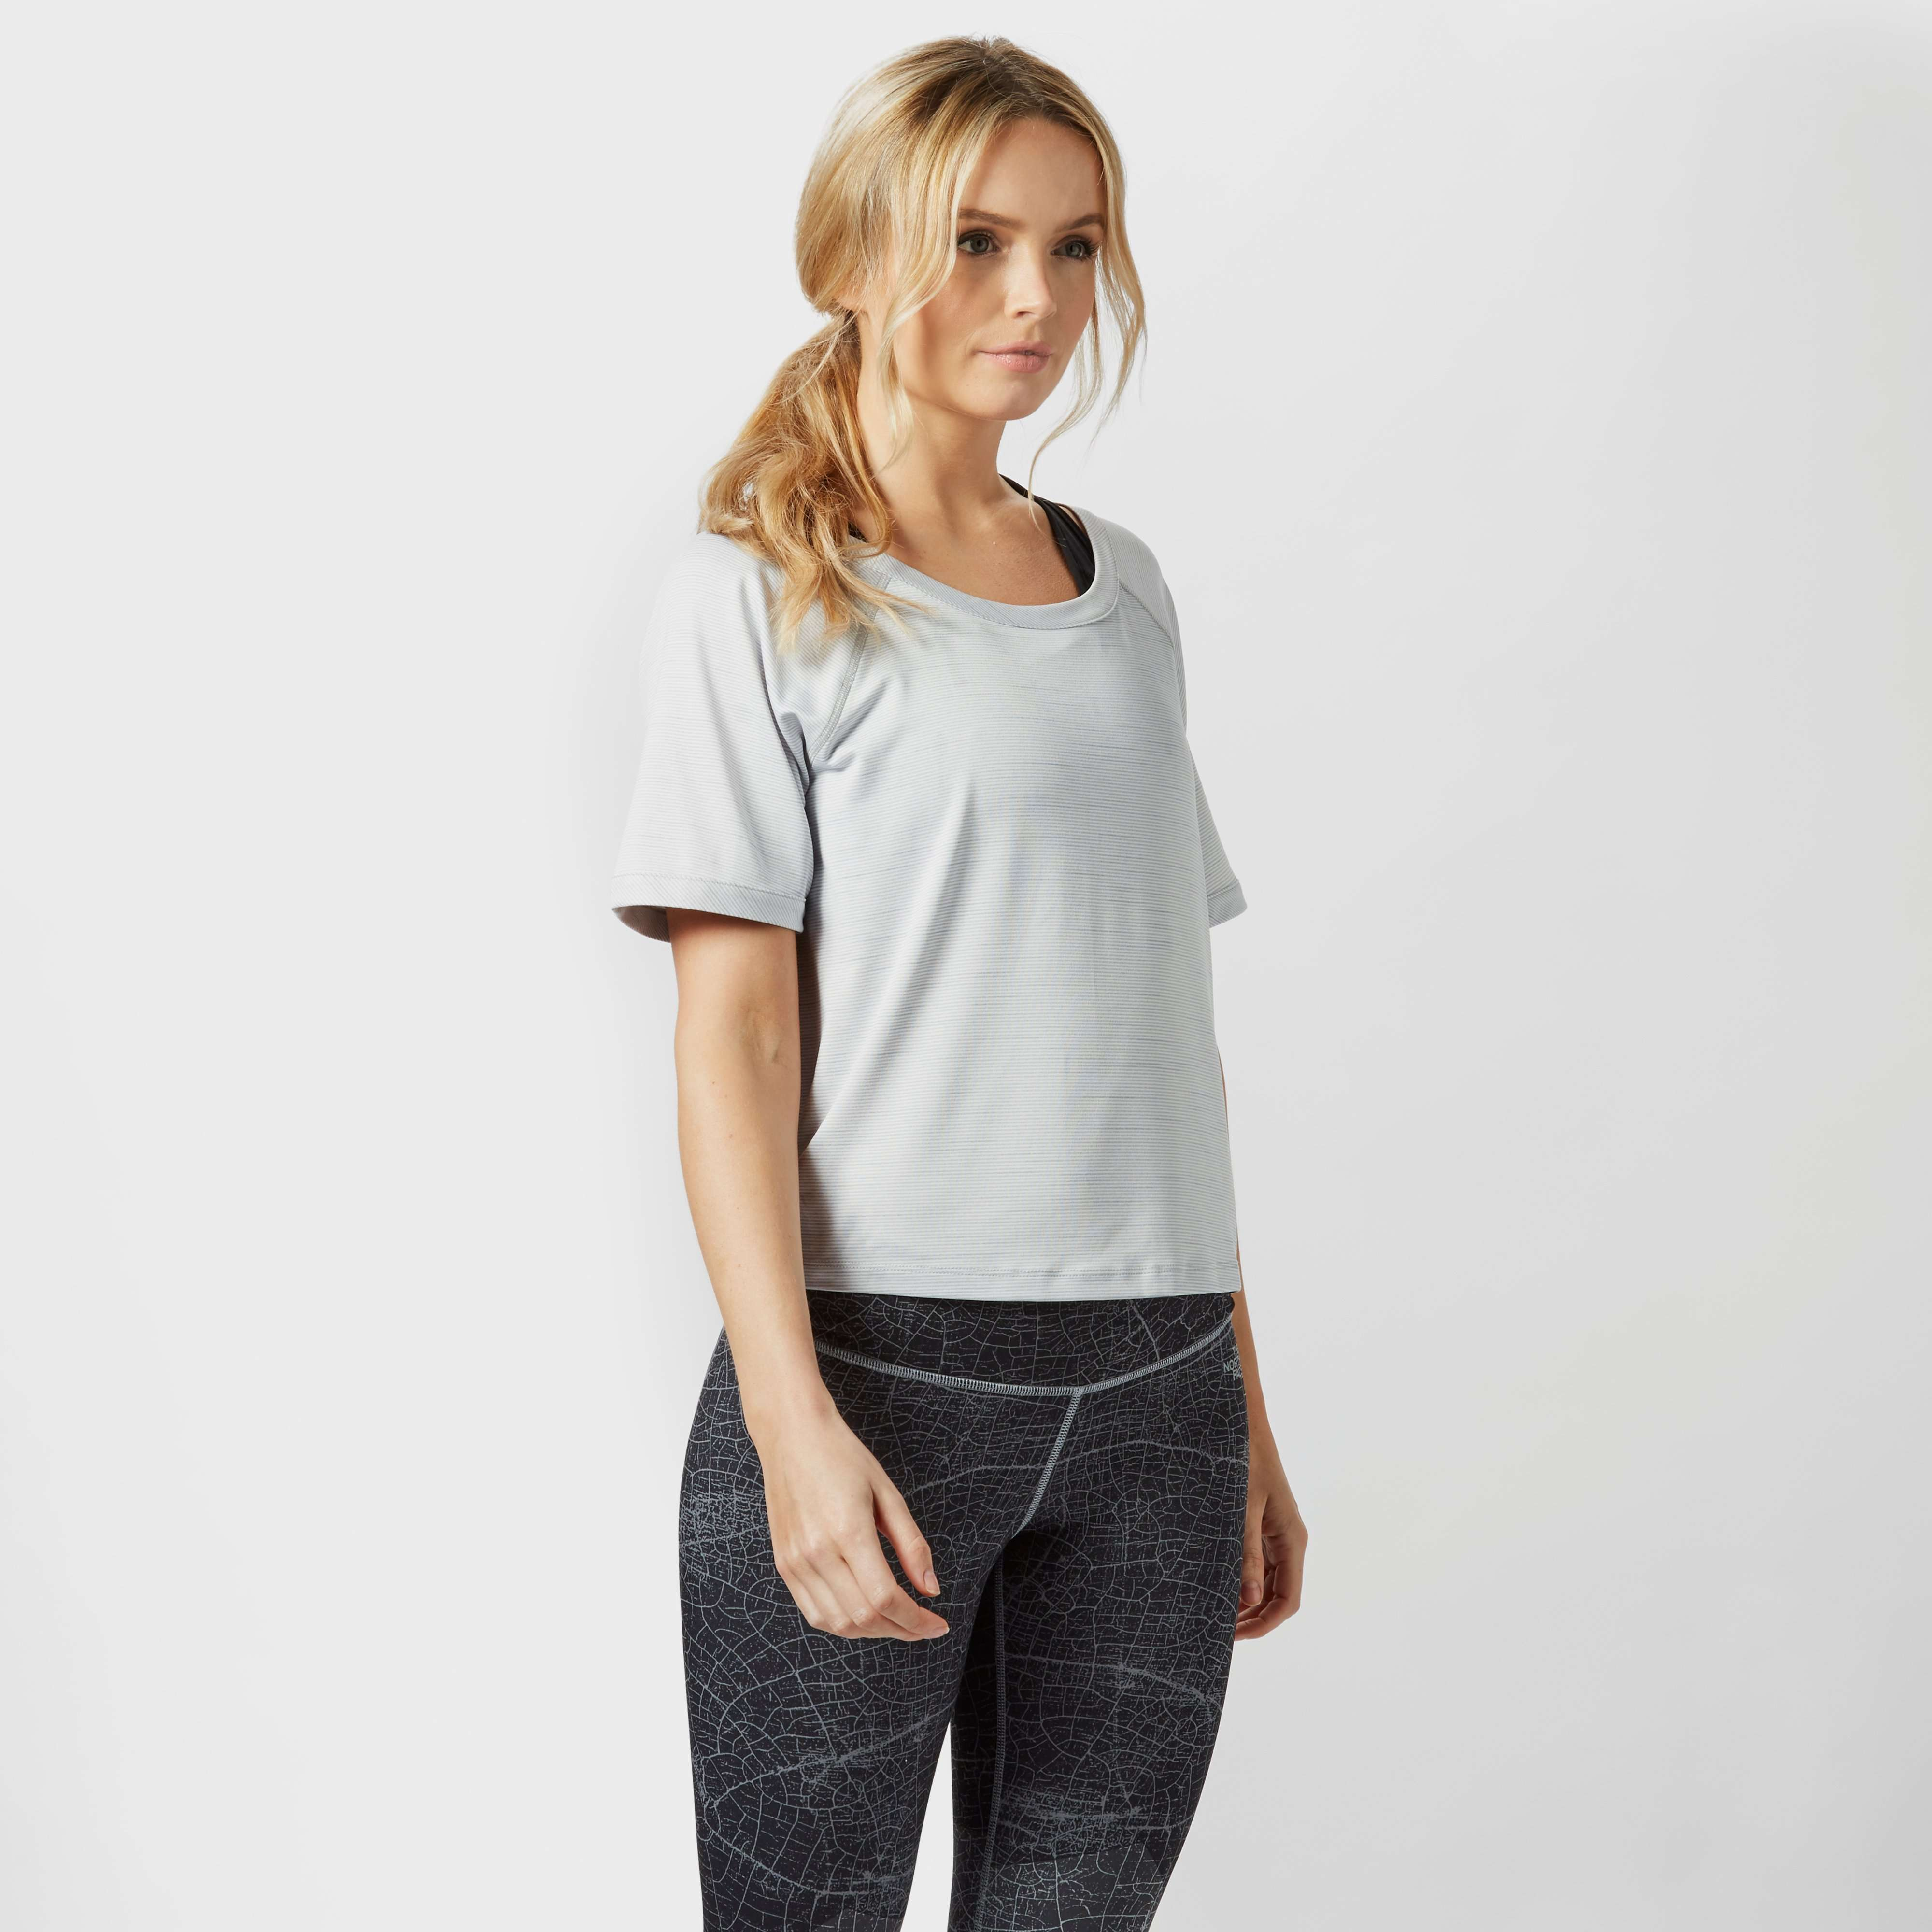 THE NORTH FACE Women's Motivation T-Shirt